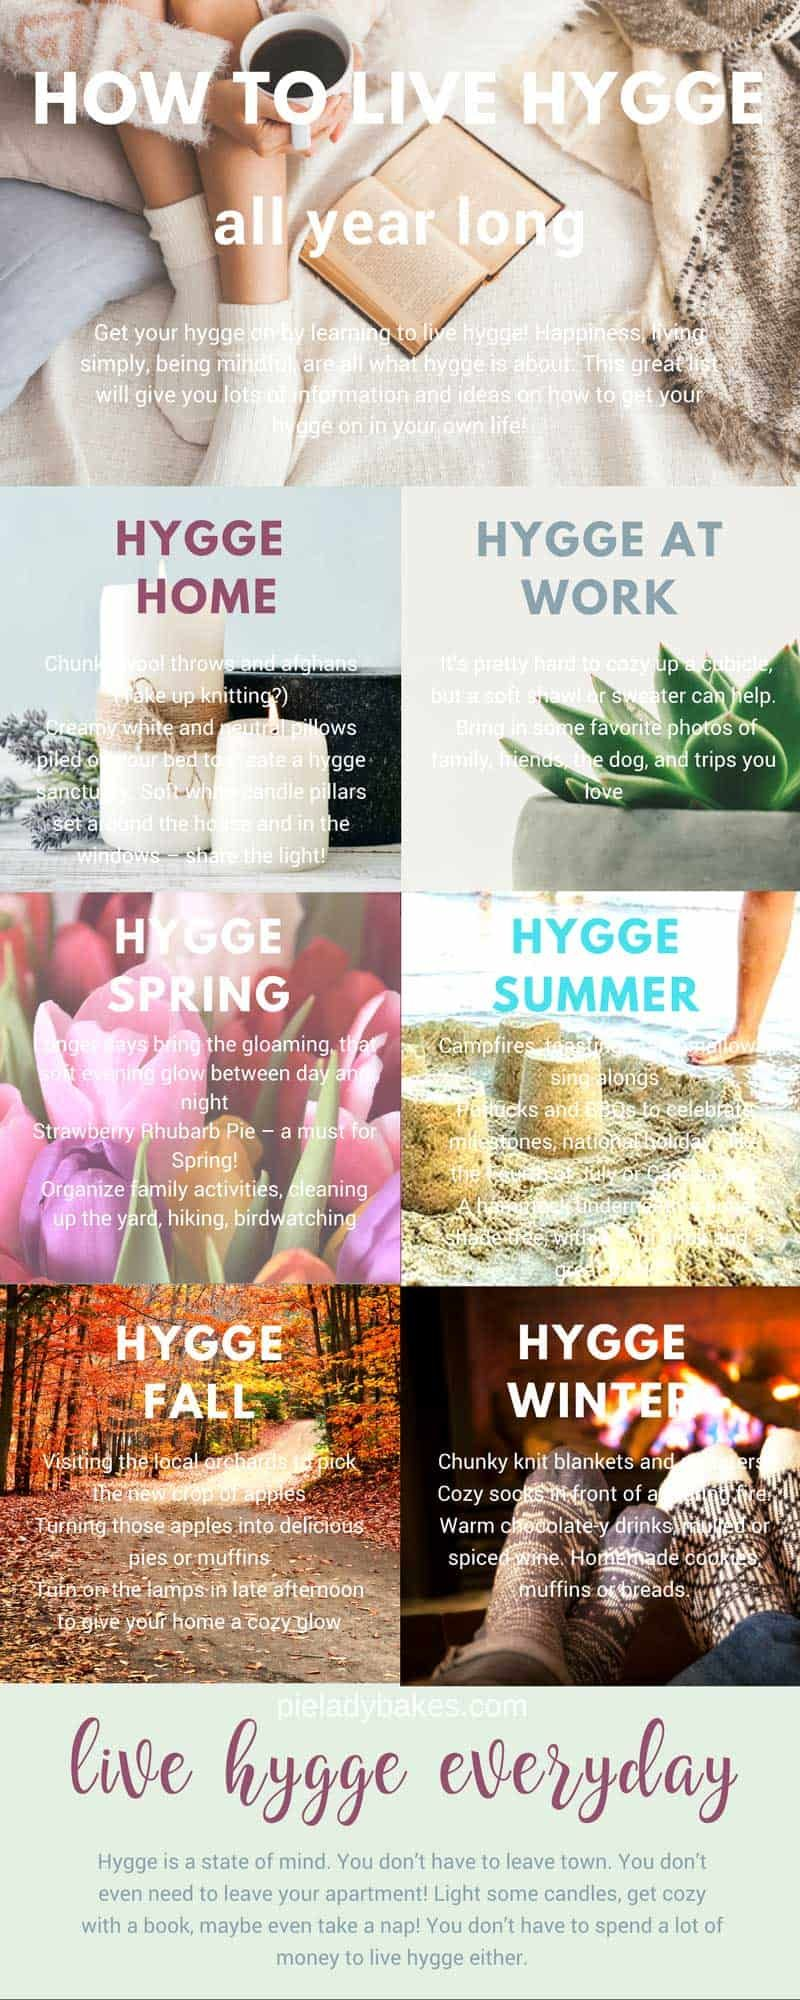 20 EASY WAYS TO BE HAPPIER WITH HYGGE Tutorial & Video   Hygge ...